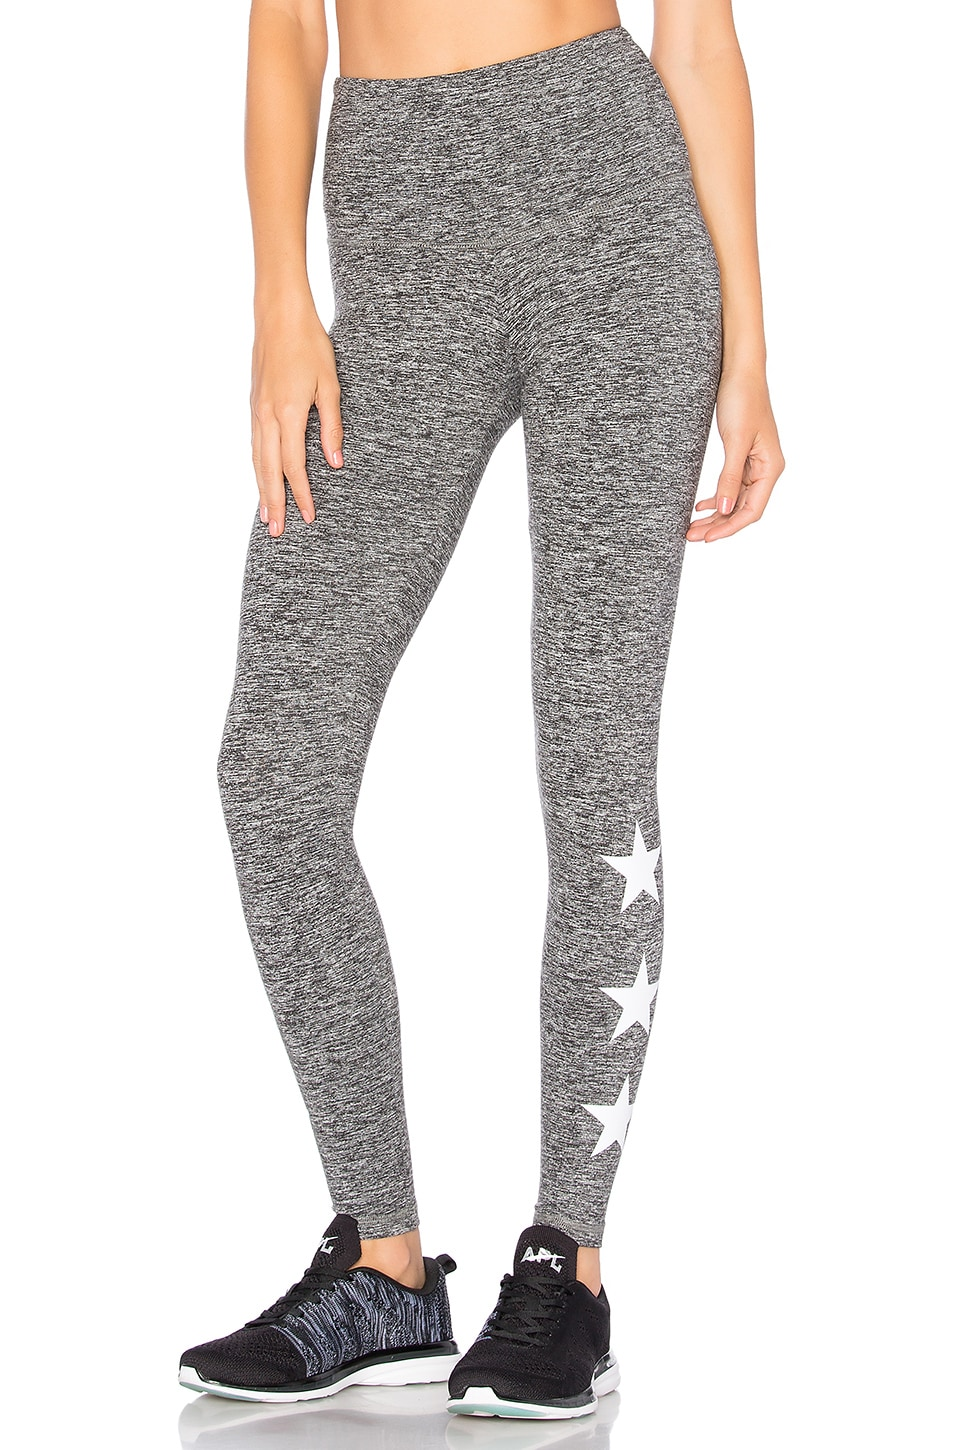 STRUT-THIS Star Legging in Grey